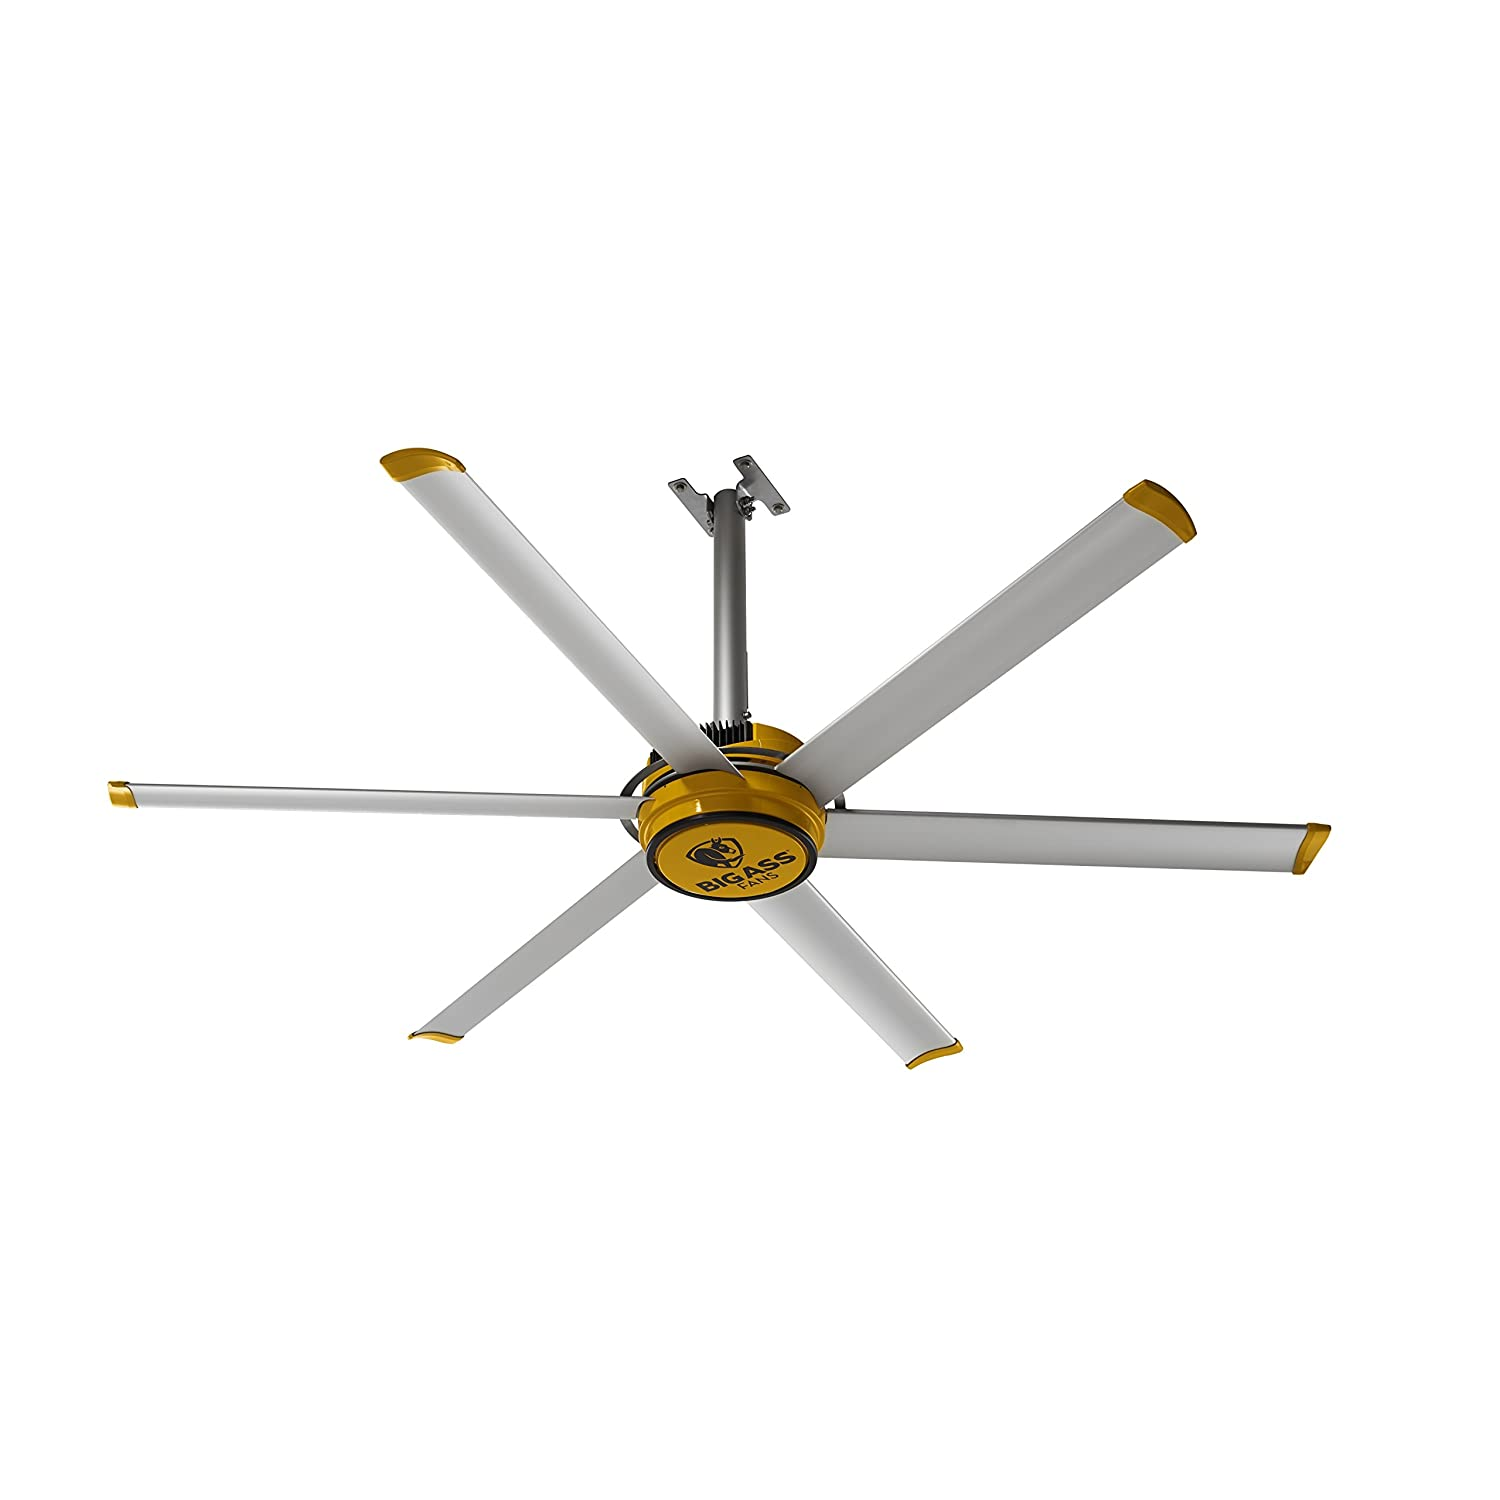 Big Ass Fans 2025 Silver and Yellow Shop Ceiling Fan, 7-ft